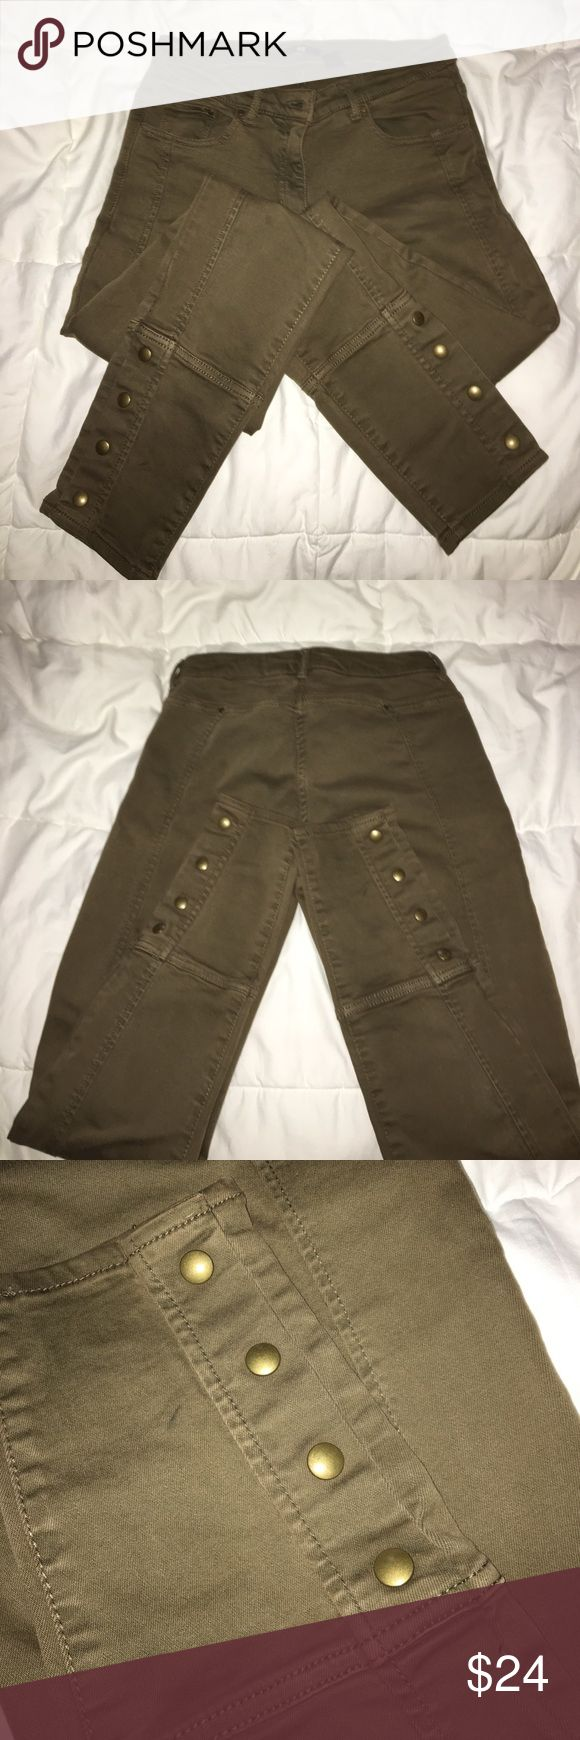 Olive skinny jeans with button detail Up for grabs is this super fabulous pair of boots olive skinny jeans.  Sleek, slimming fit with stretch and bottom details at the ankle.  Compliments galore with these jeans! H&M Pants Skinny